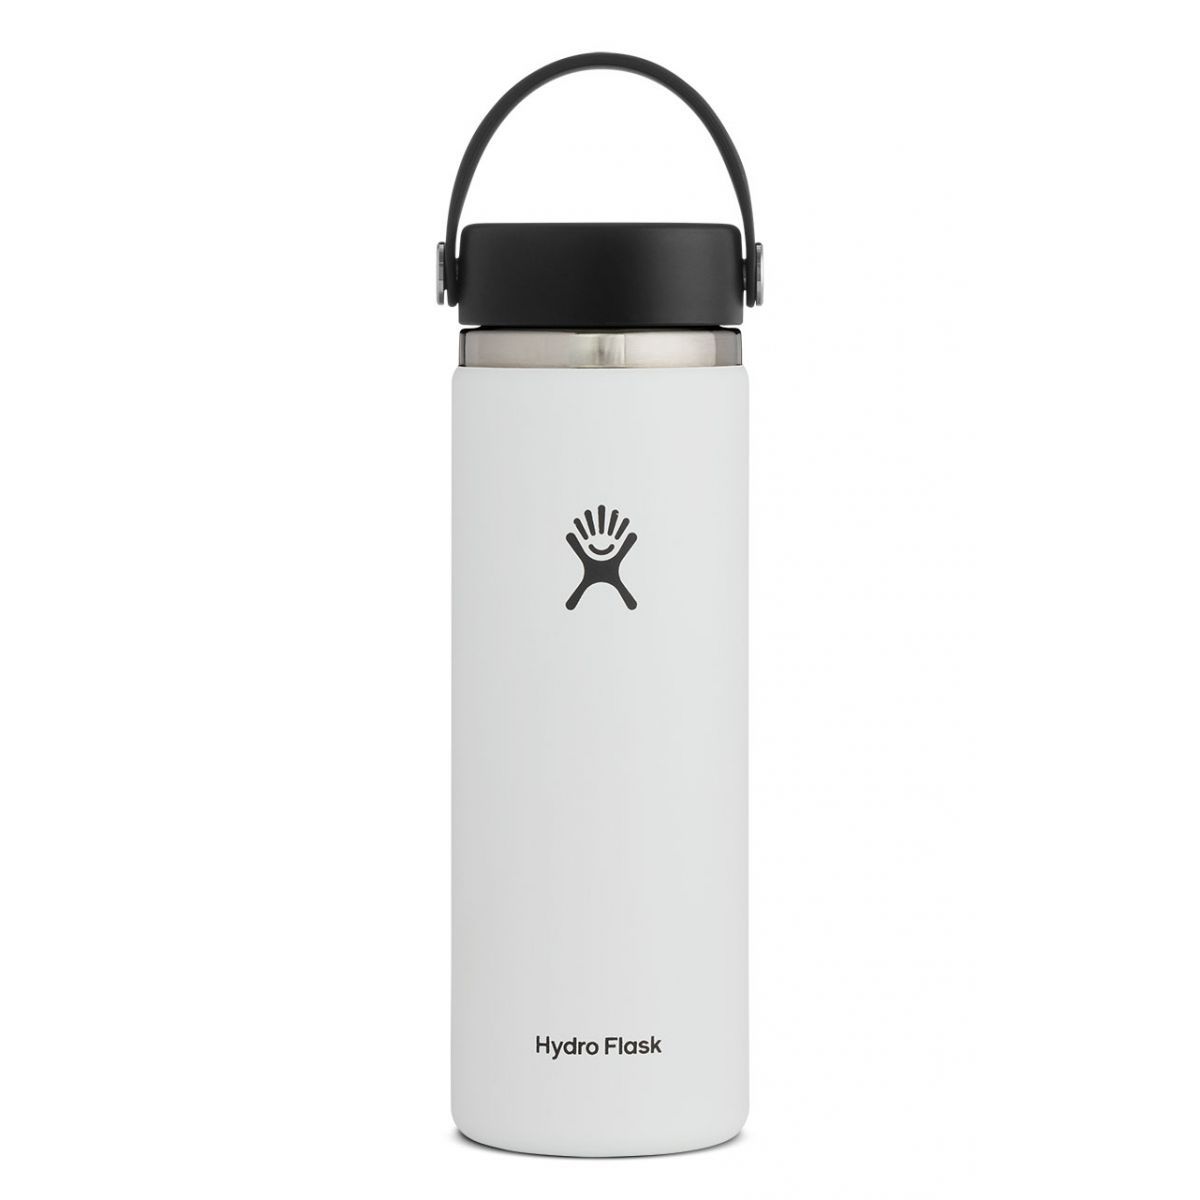 Hydro Flask 20 oz (591 ml) Wide Mouth